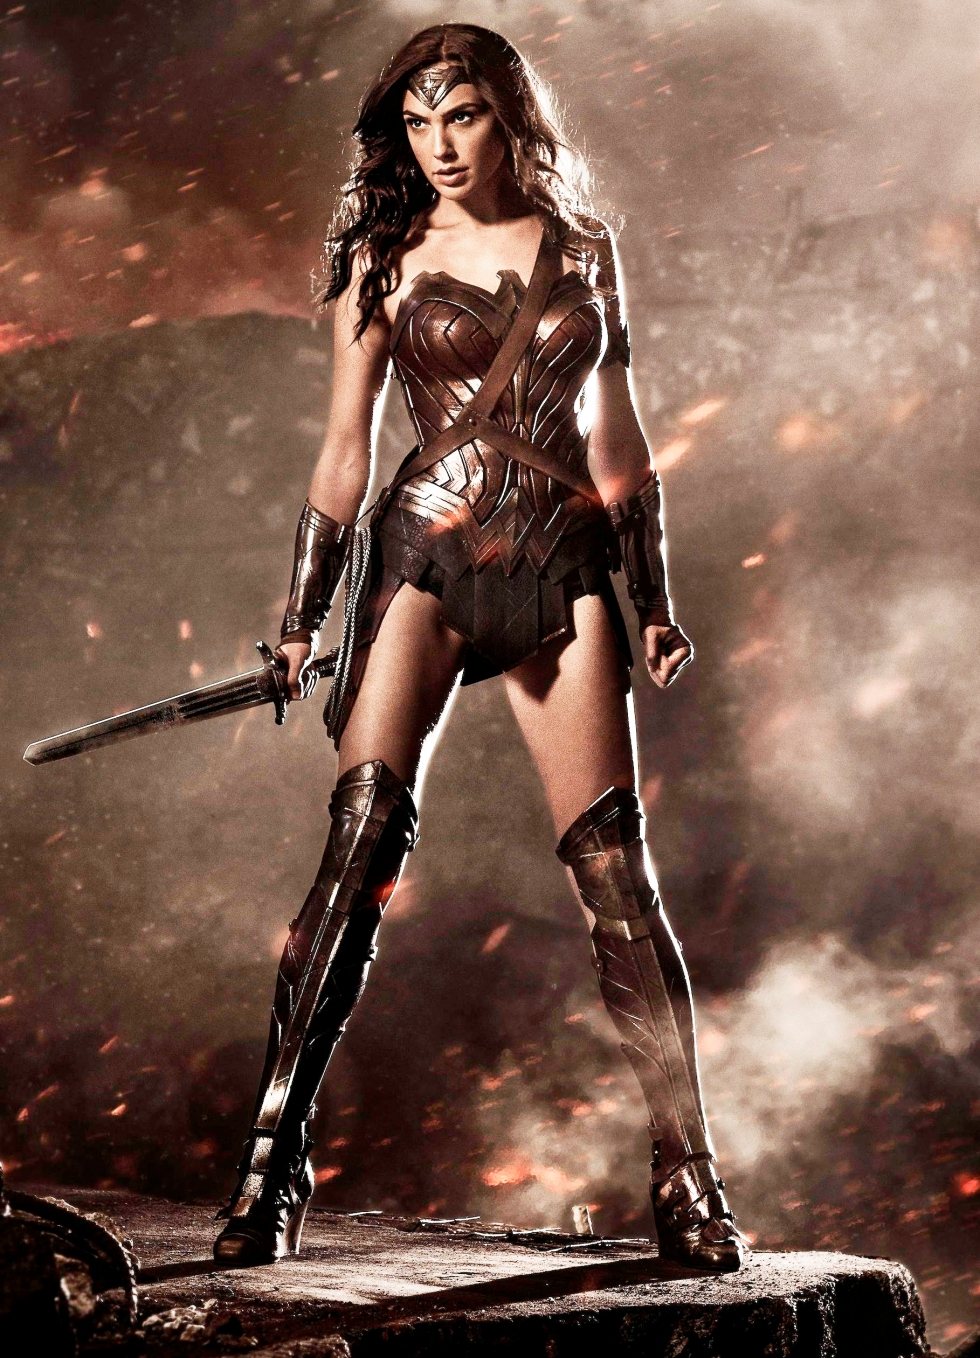 Wonder_Woman_first_look_promo copy.jpg